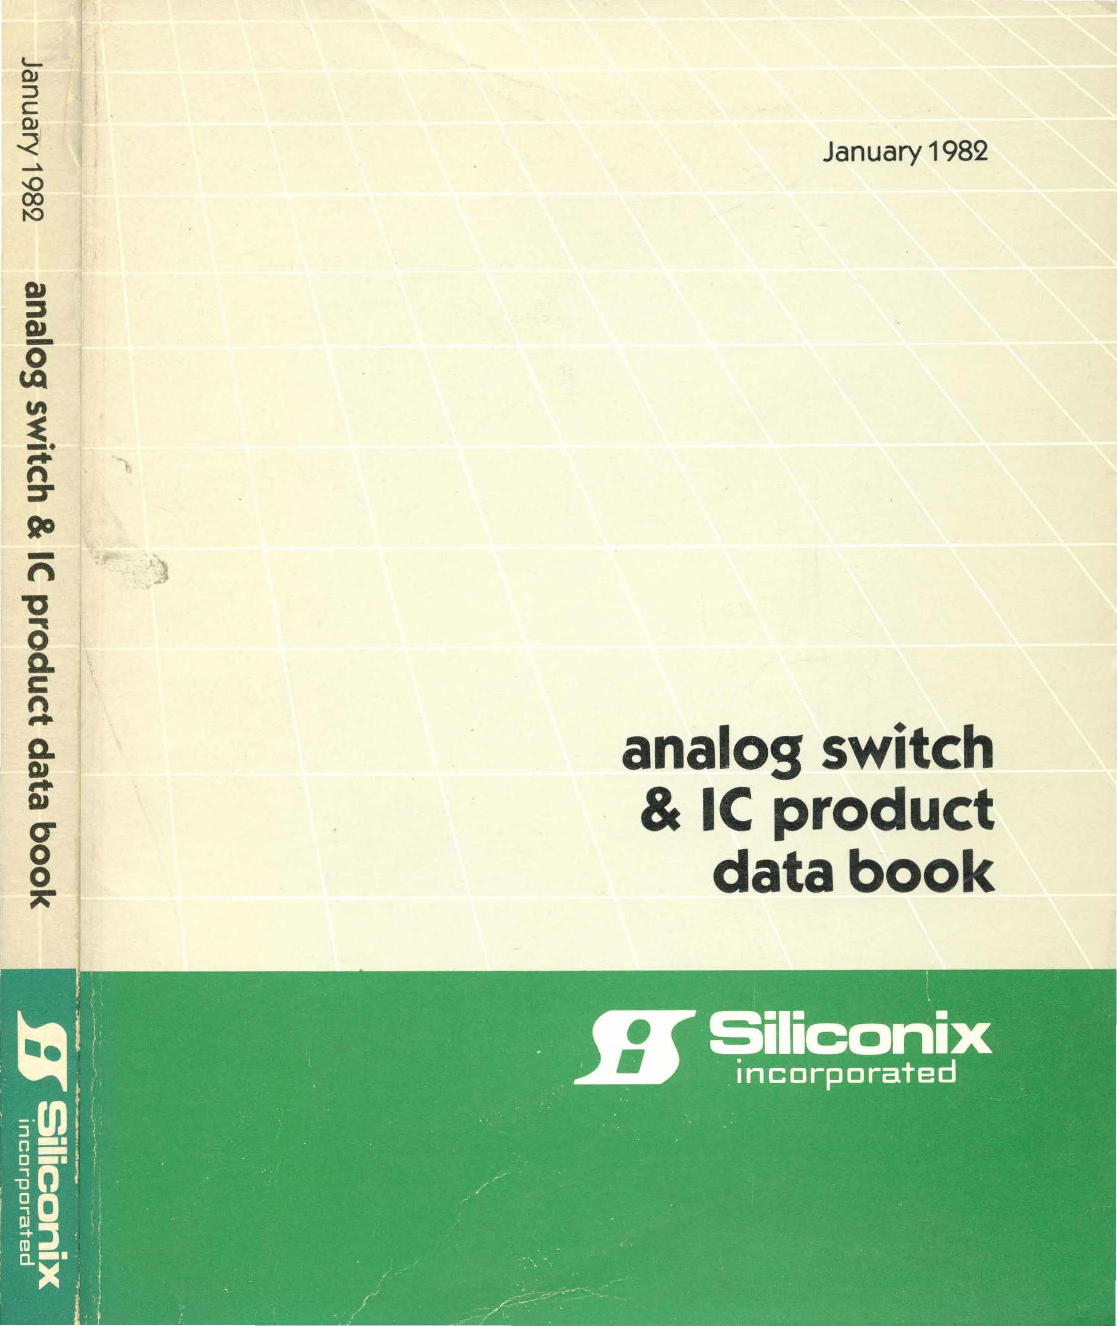 1982 Siliconix Analog Switch And Ic Product Data Book Lowvoltage Quad 21 Mux Demux Bus Idt